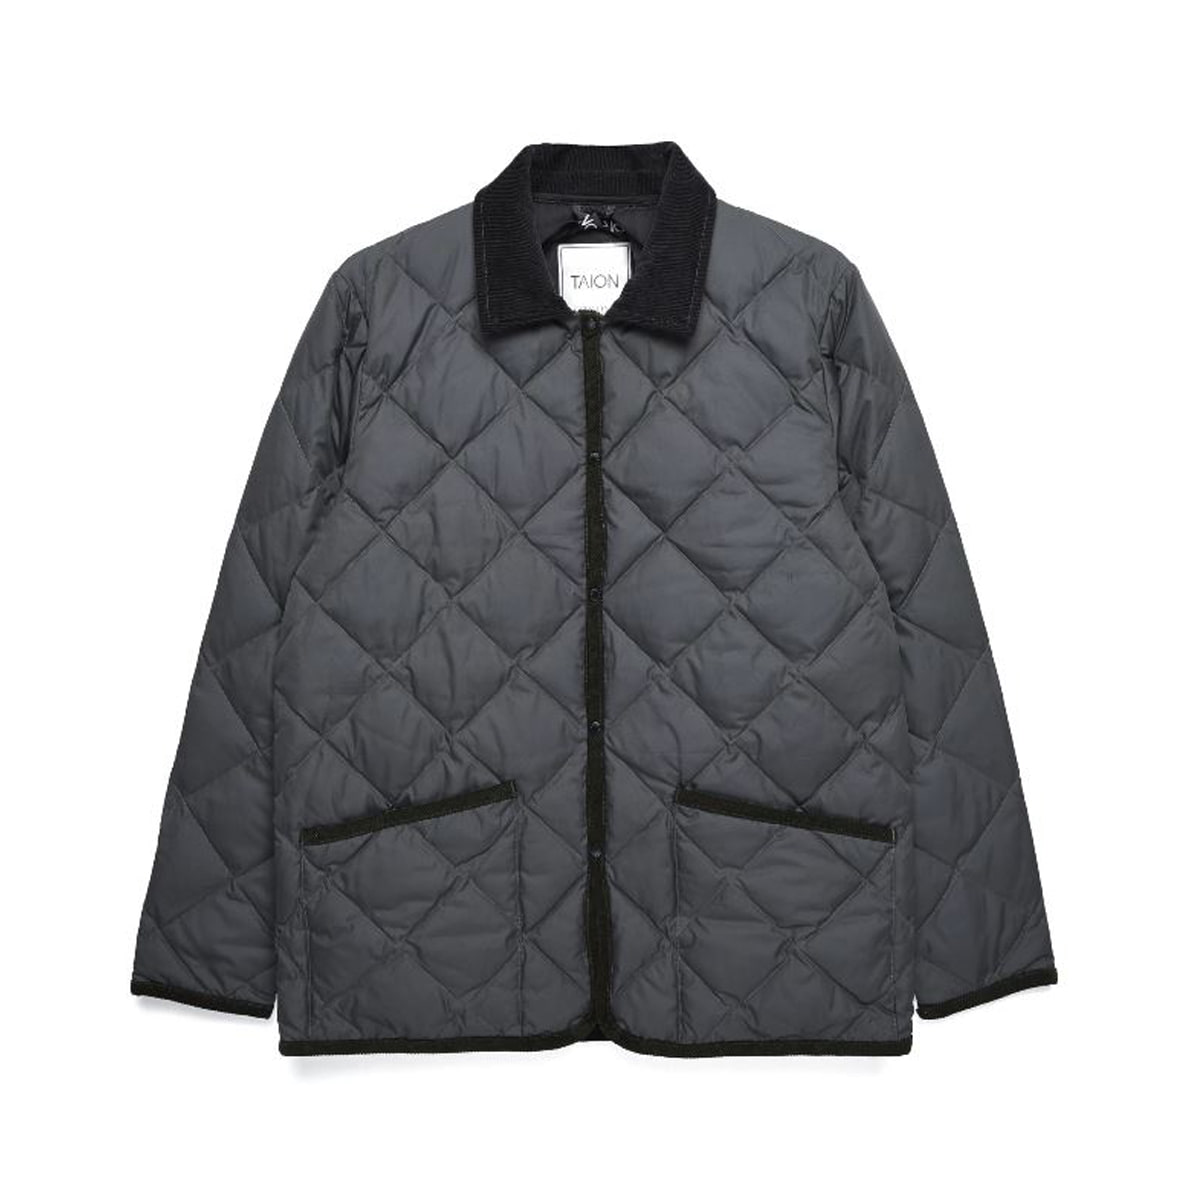 [TAION] PIPING COLLARED DOWN JACKET (TAION-109CI) 'GRAY'